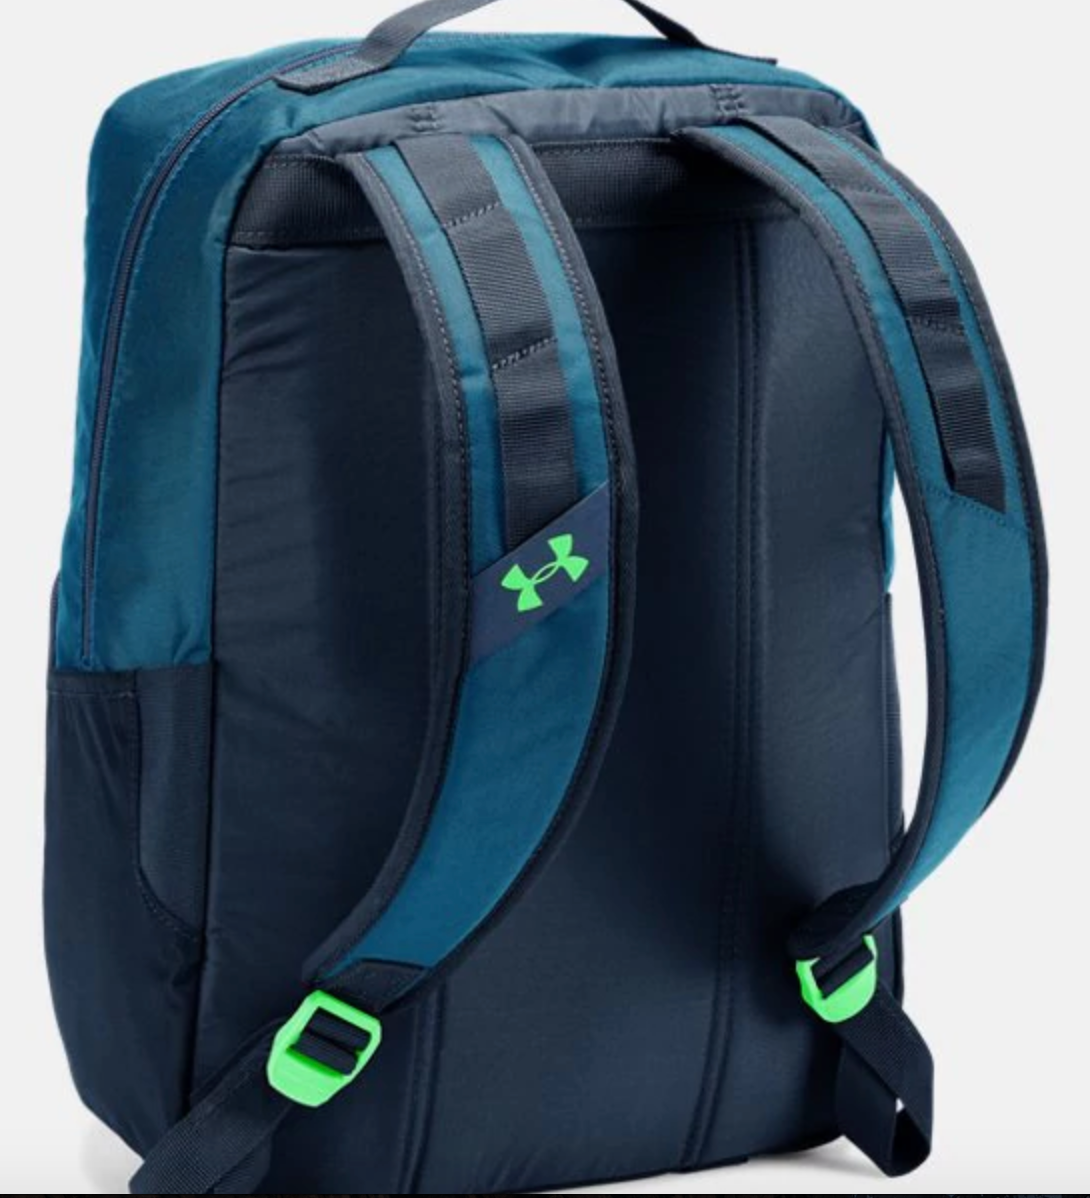 b29627f2ab93 Boys  Under Armour Armour Select Backpack- Navy Neon Green ...